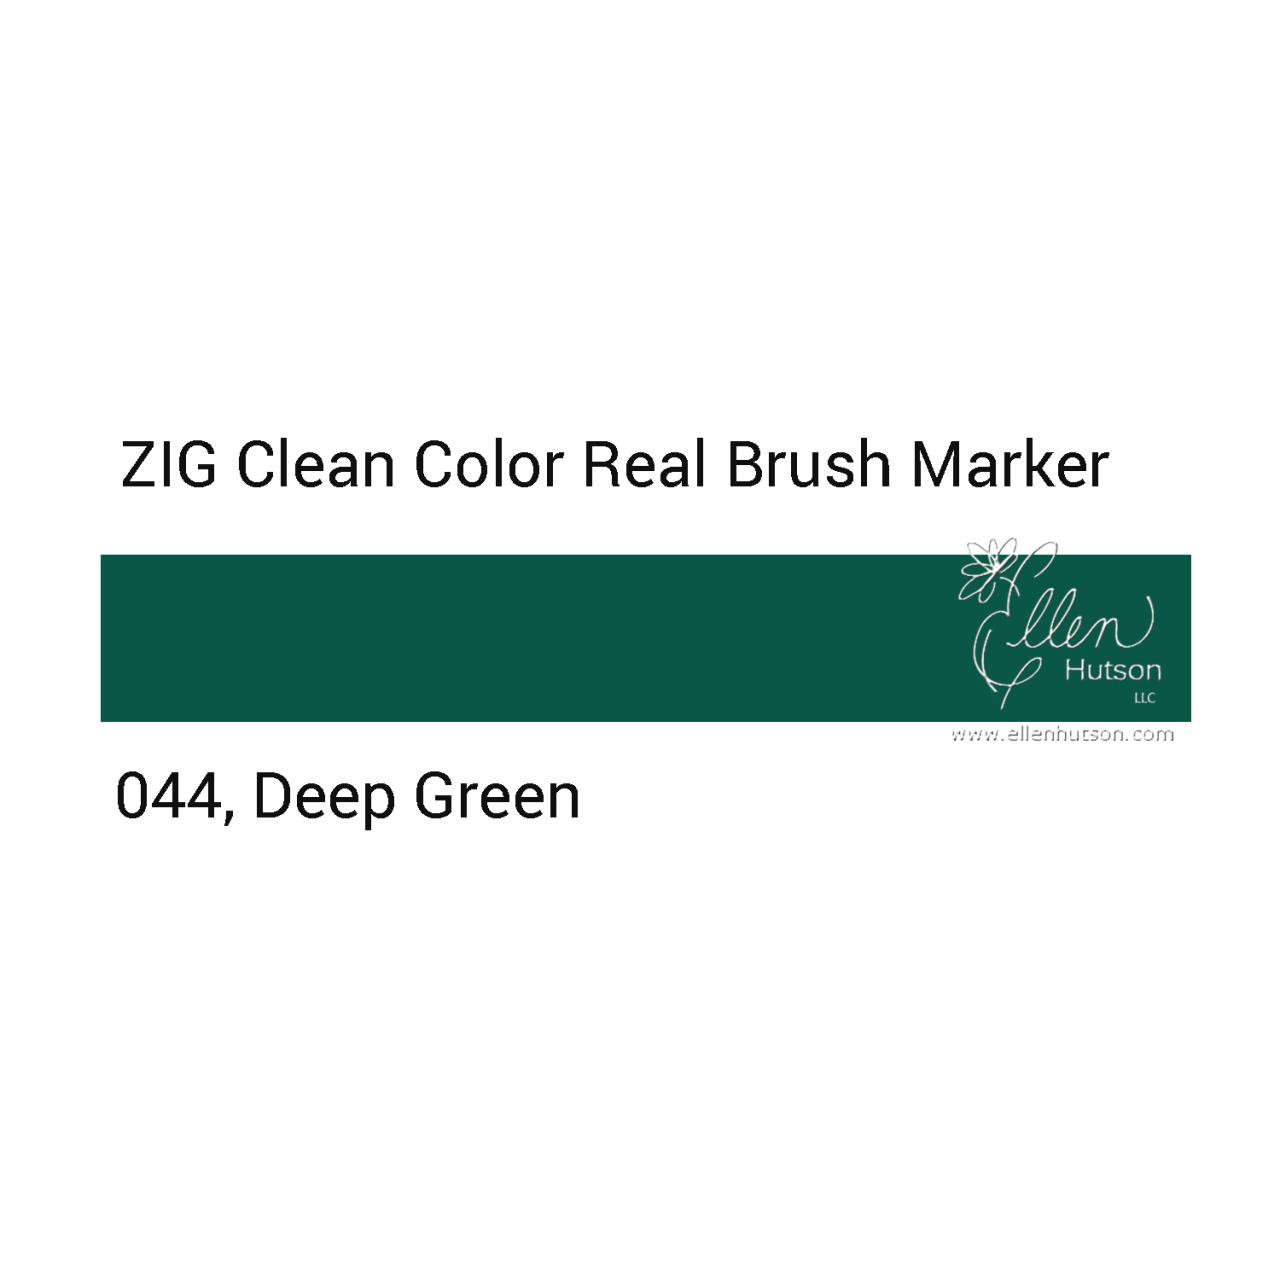 044 - Deep Green, ZIG Clean Color Real Brush Marker -